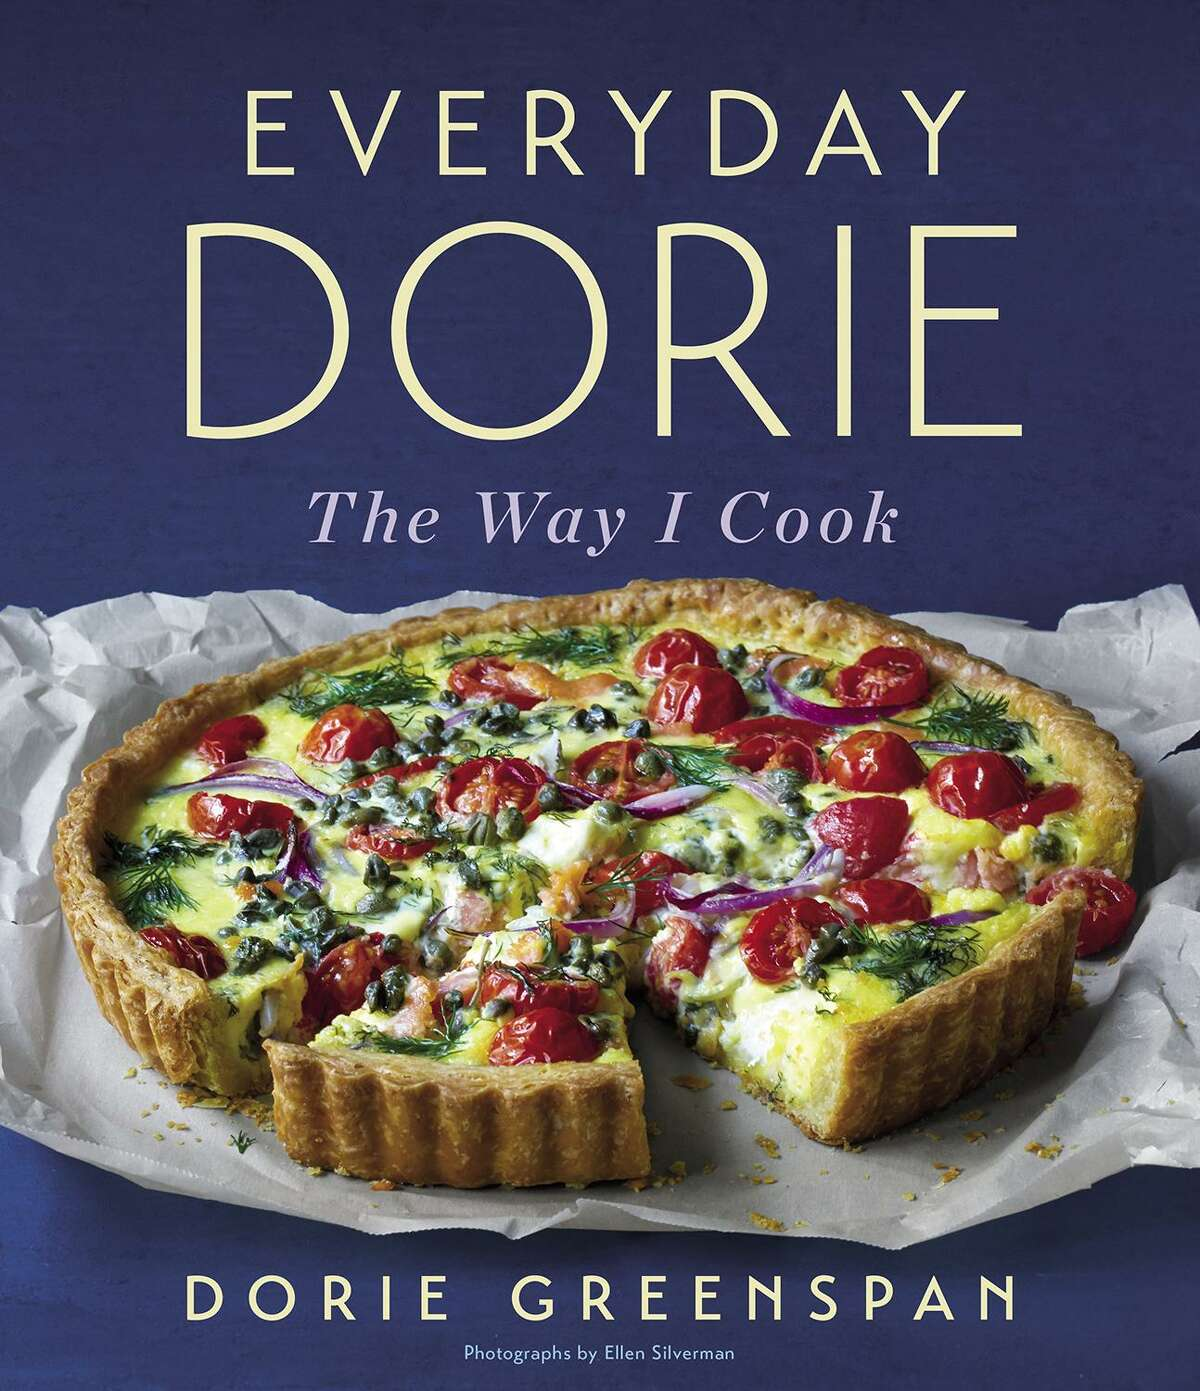 Everyday Dorie: The Way I Cook by Dorie Greenspan (Houghton Mifflin Harcourt, $35)